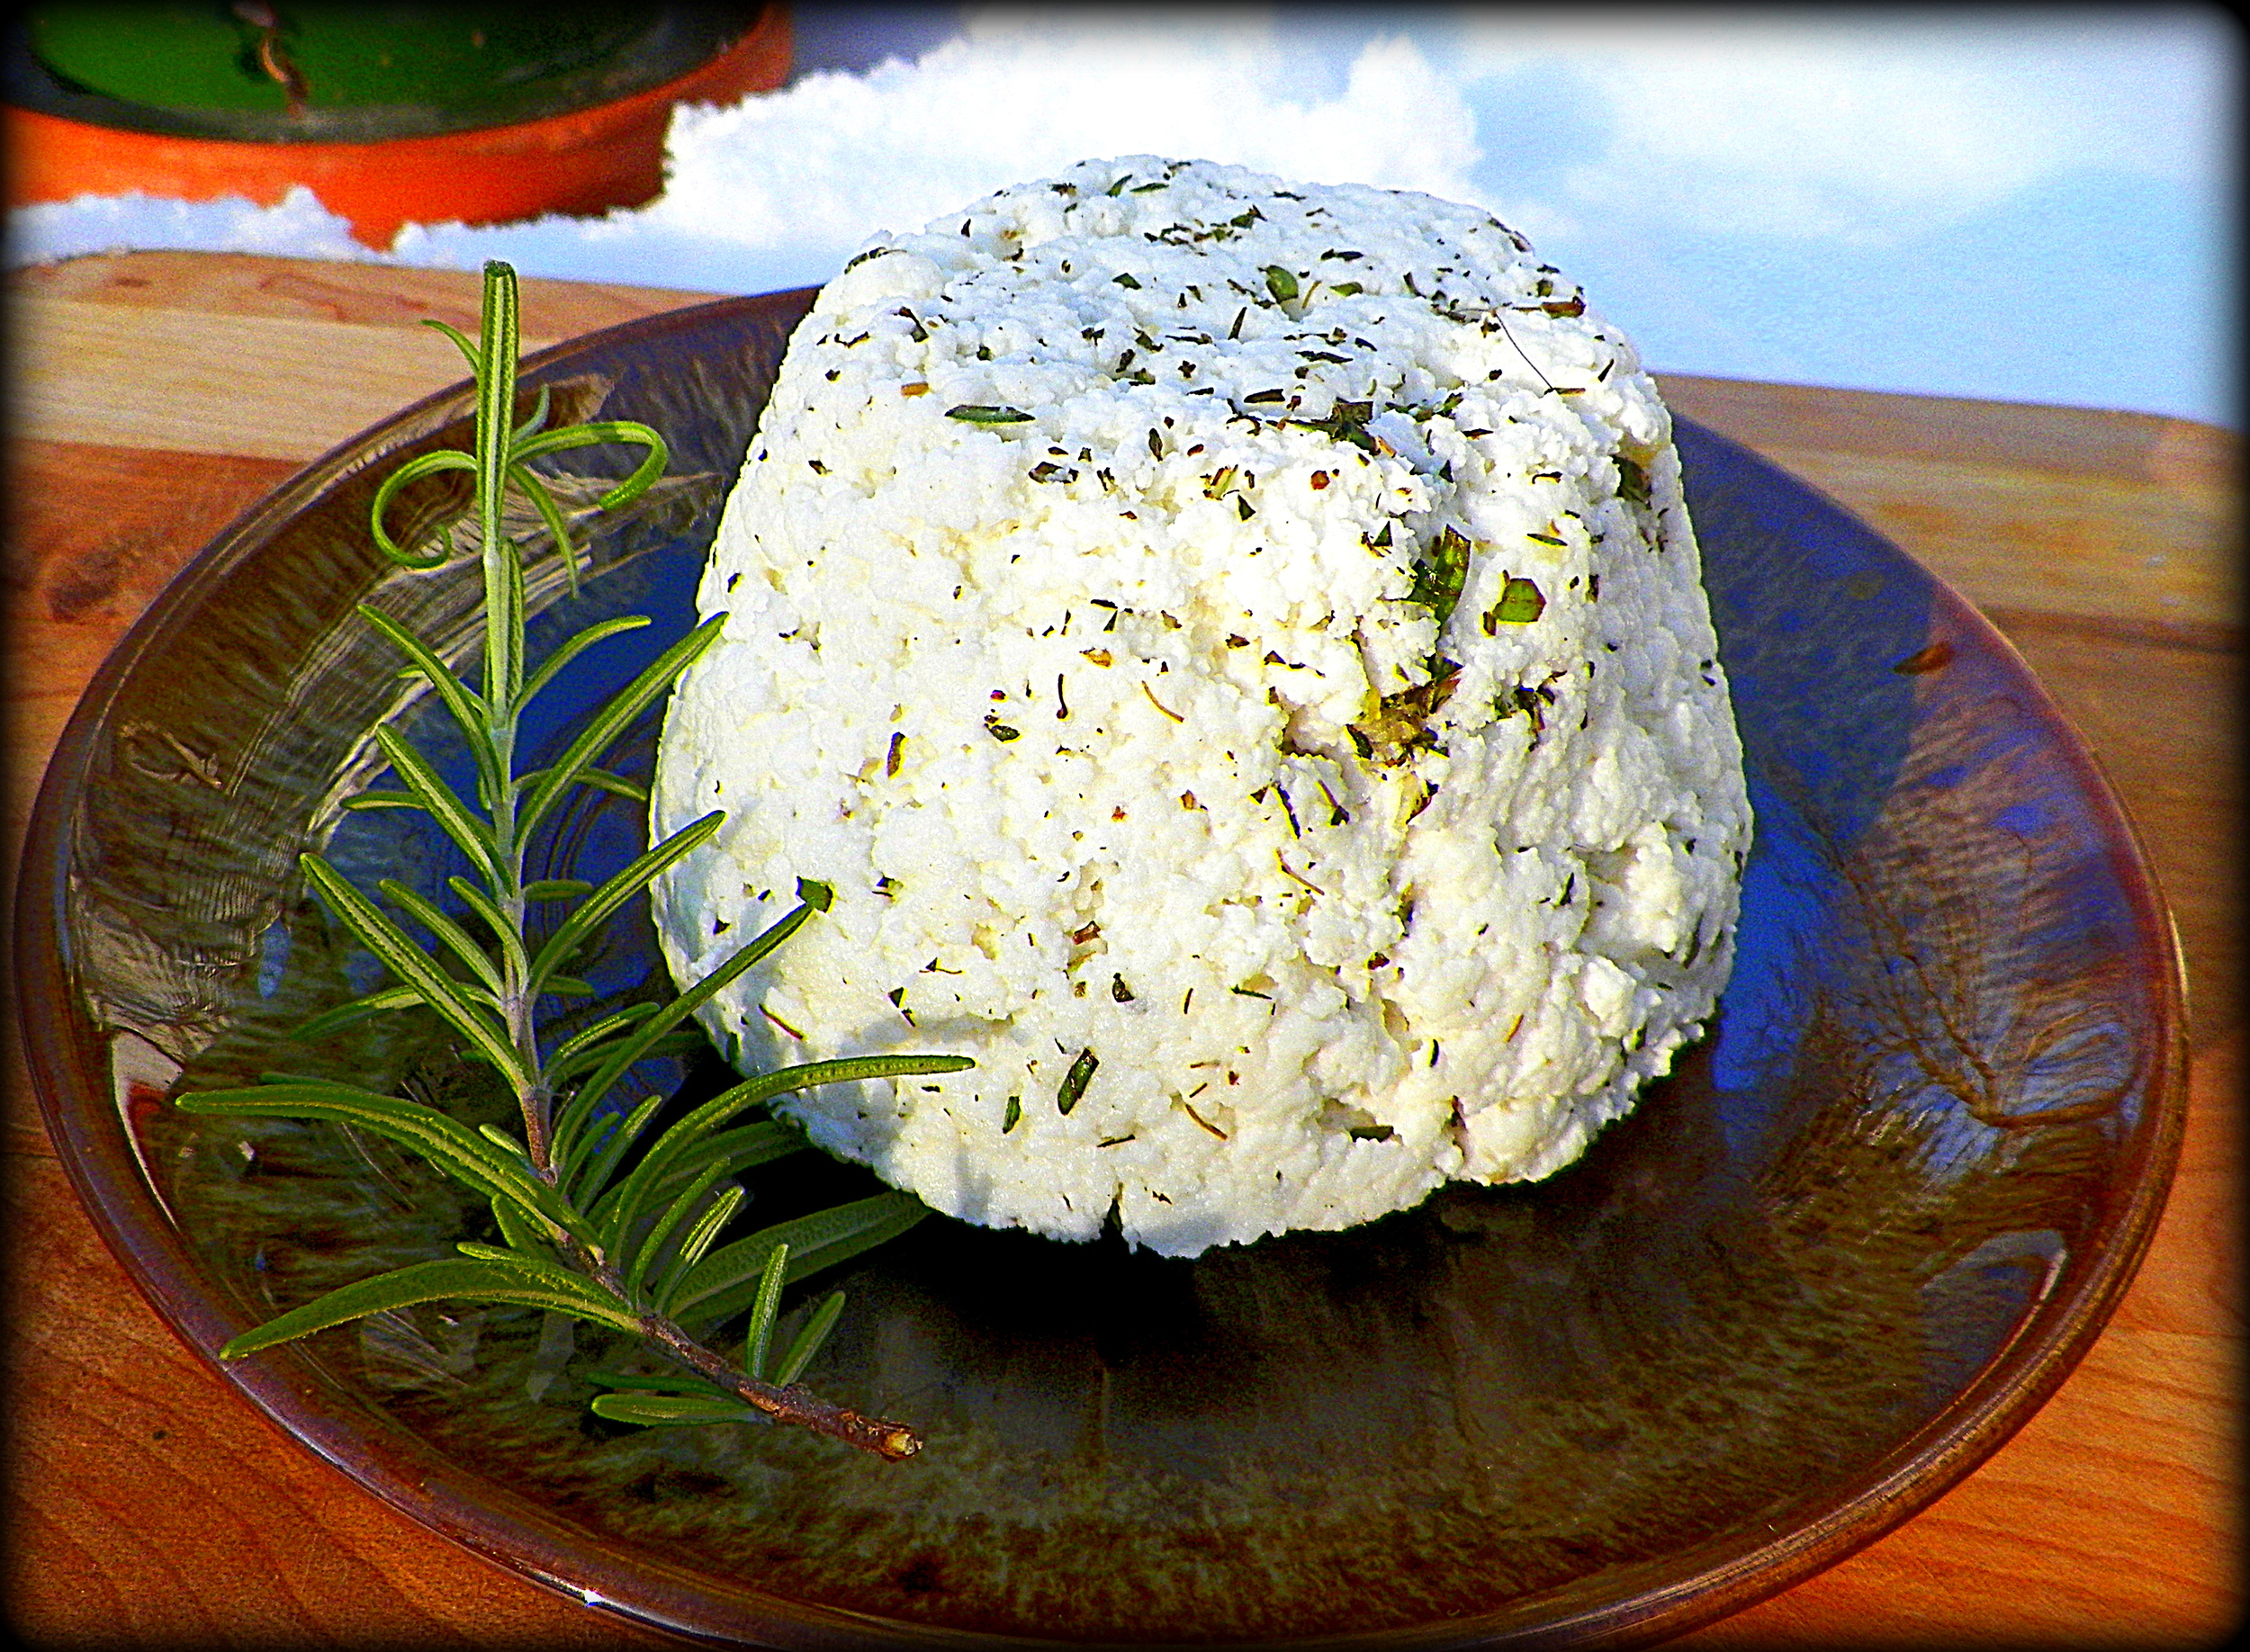 Herbed Home-made Goat Cheese